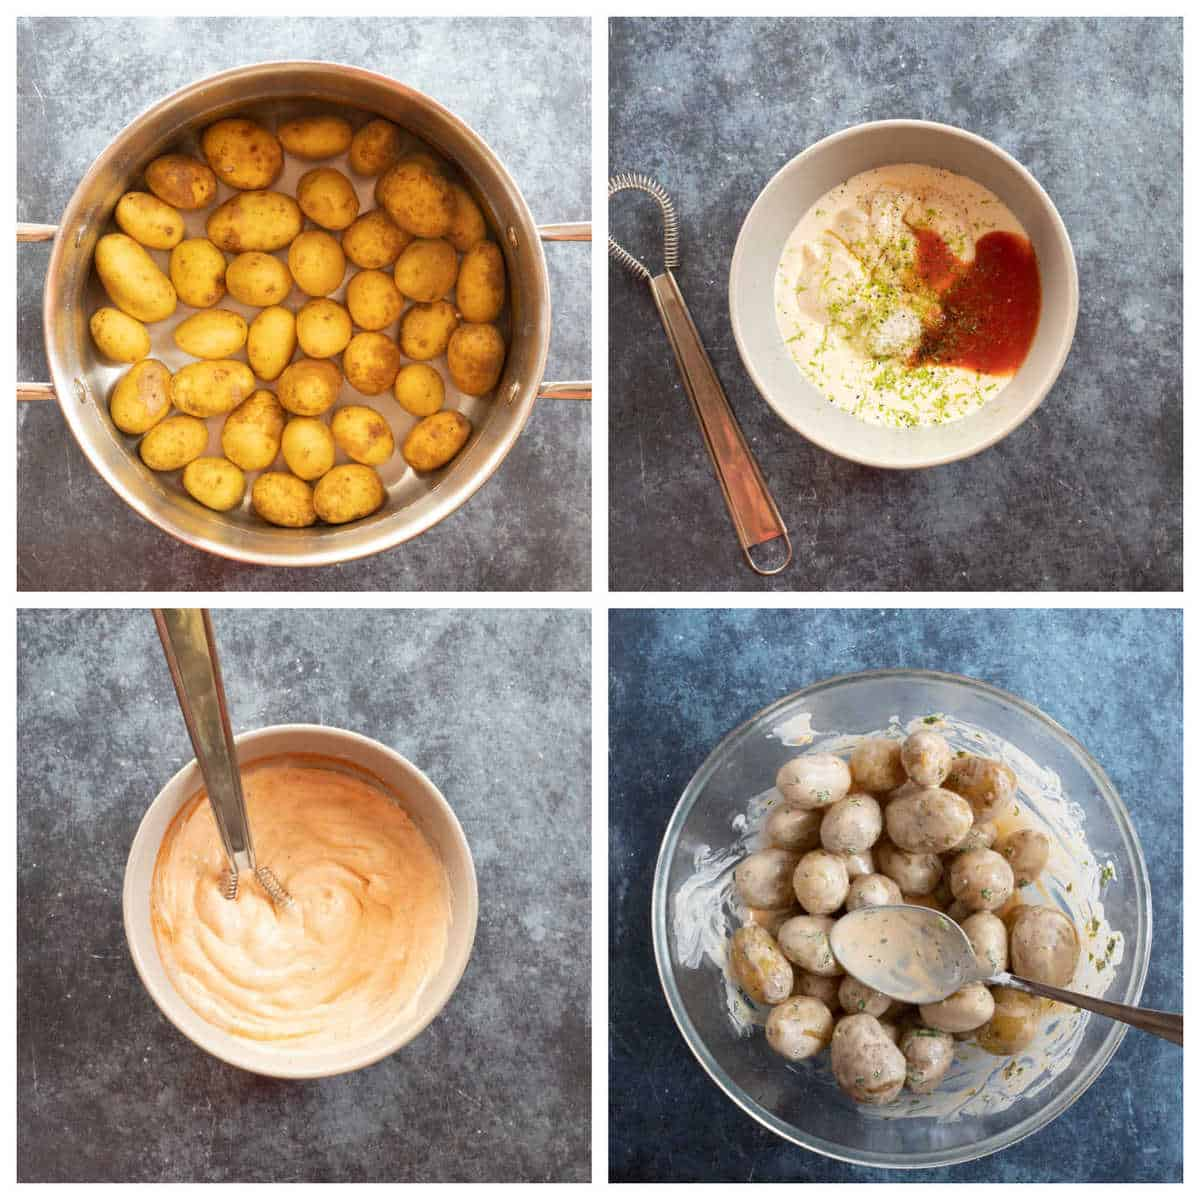 Step by step instructions for making the spicy potato salad with baby potatoes.